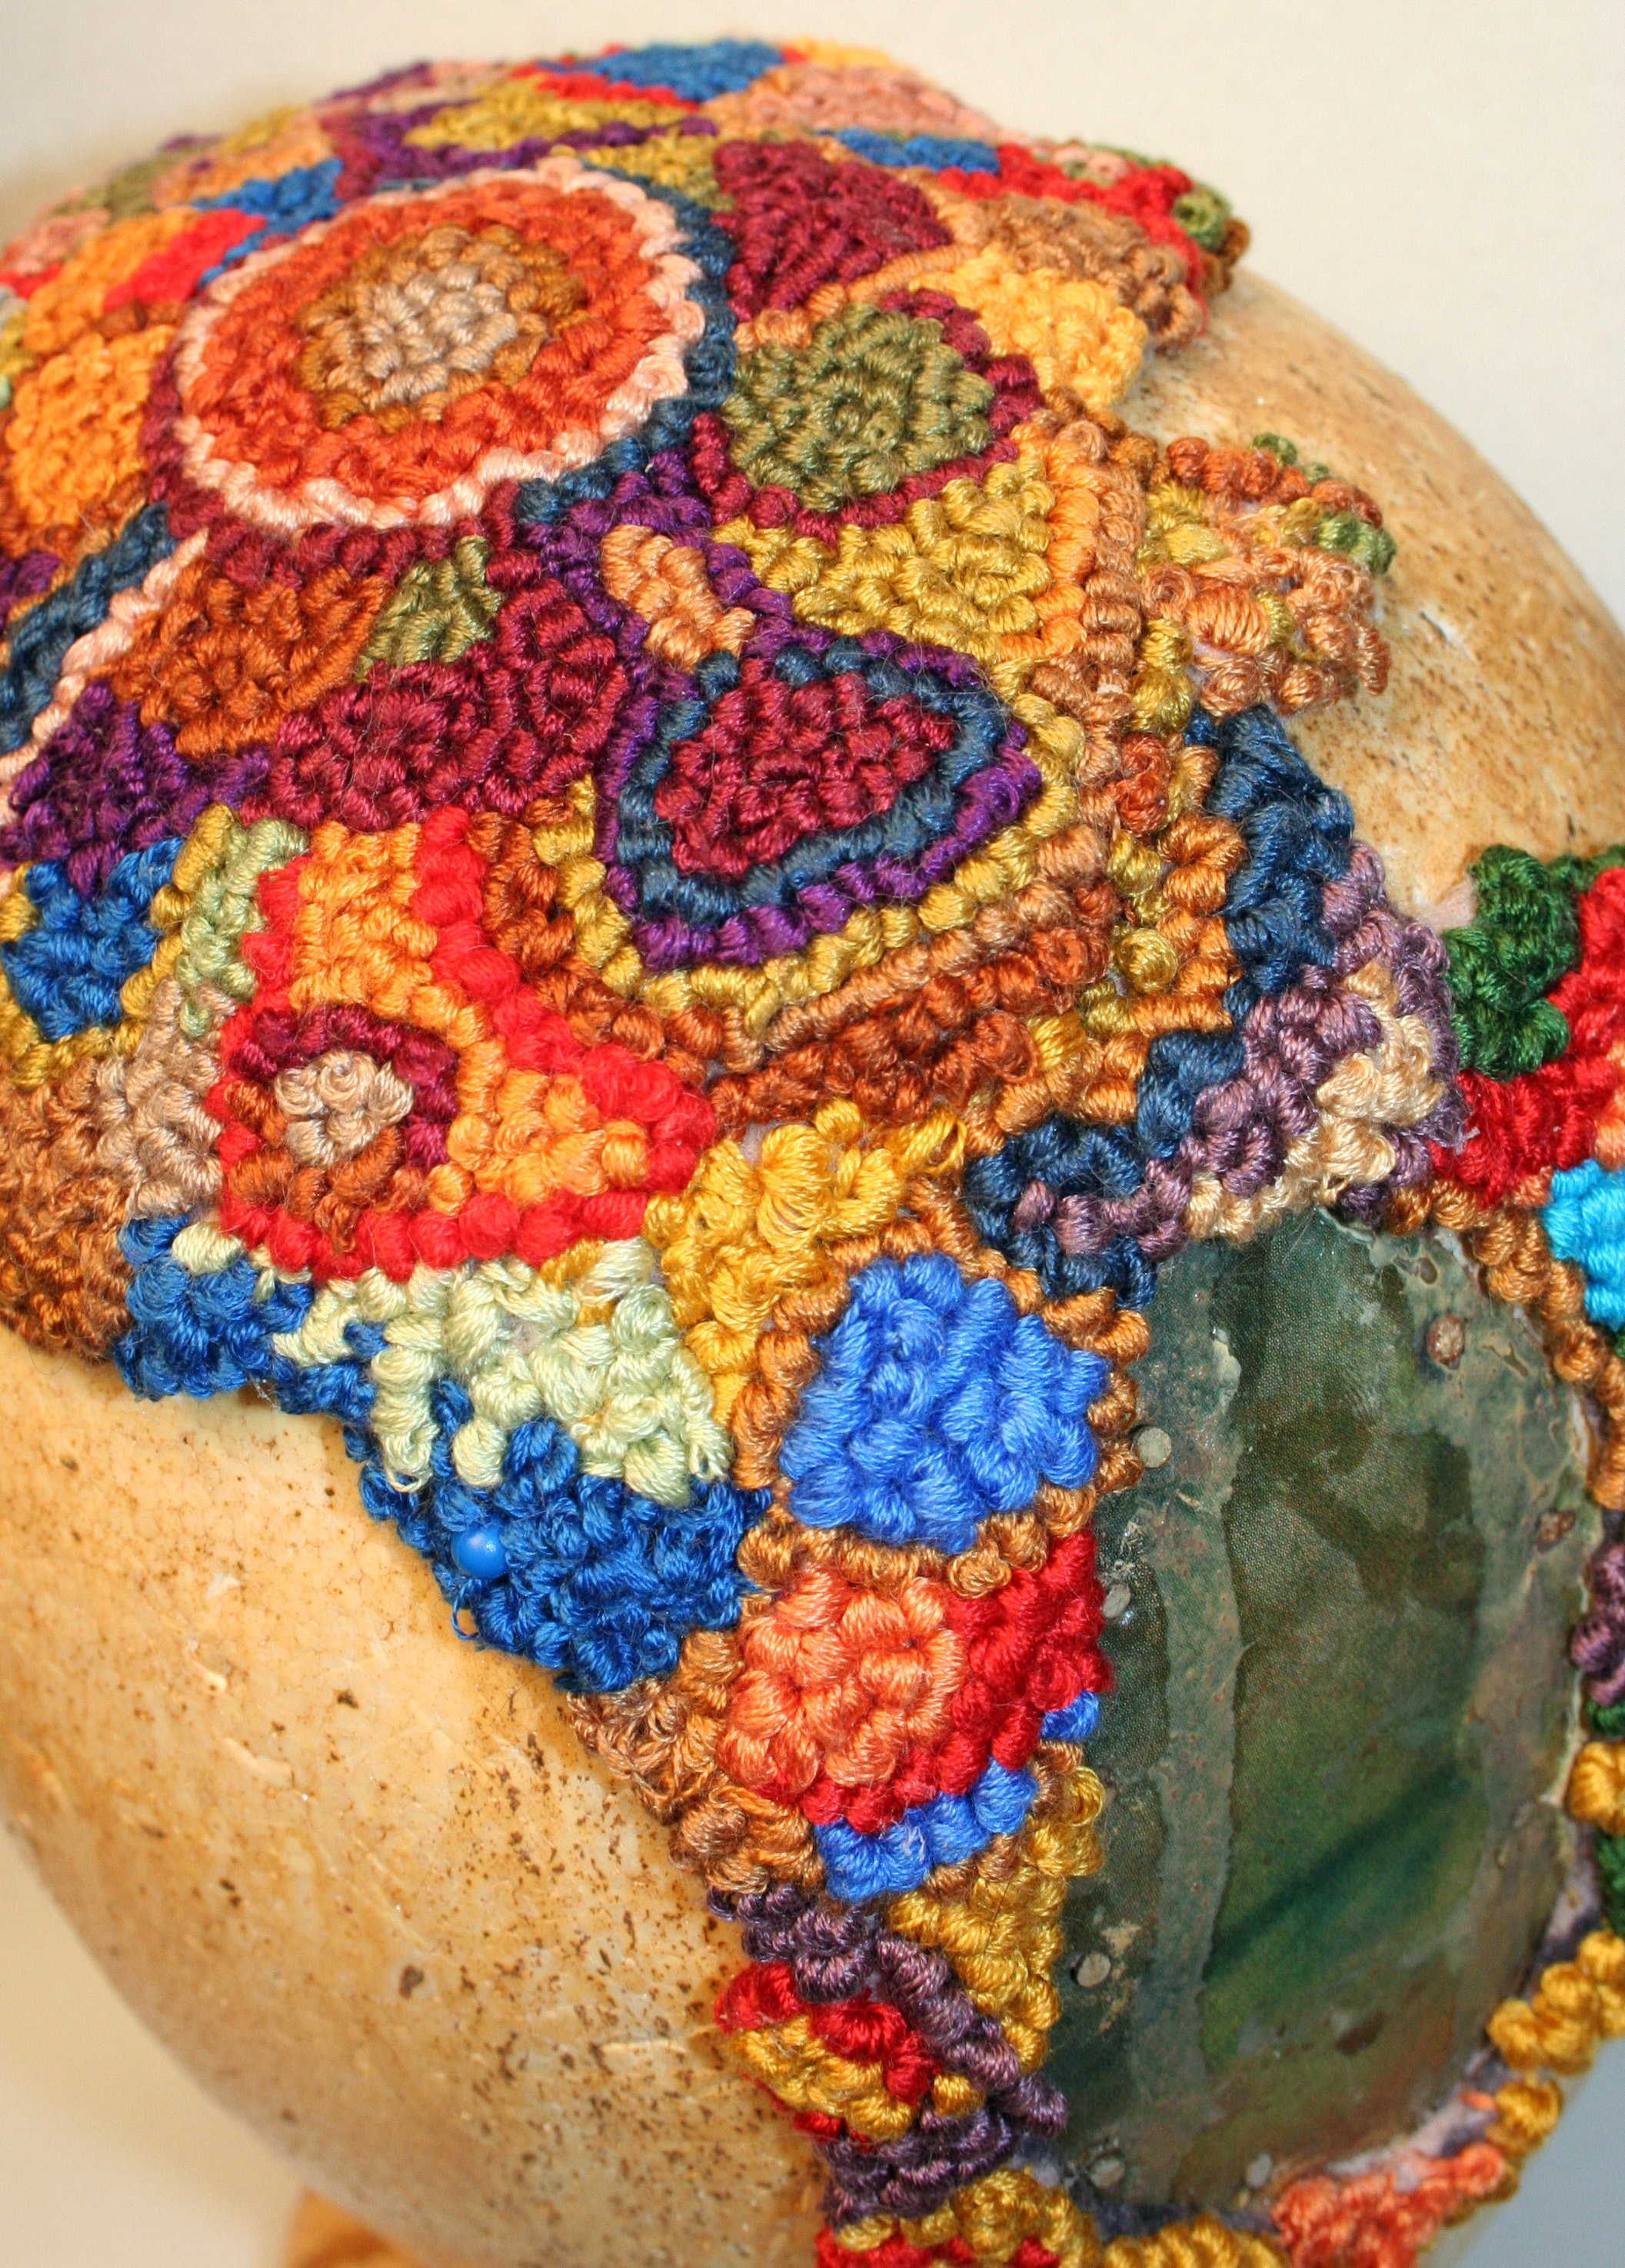 Extensive hand embroidery